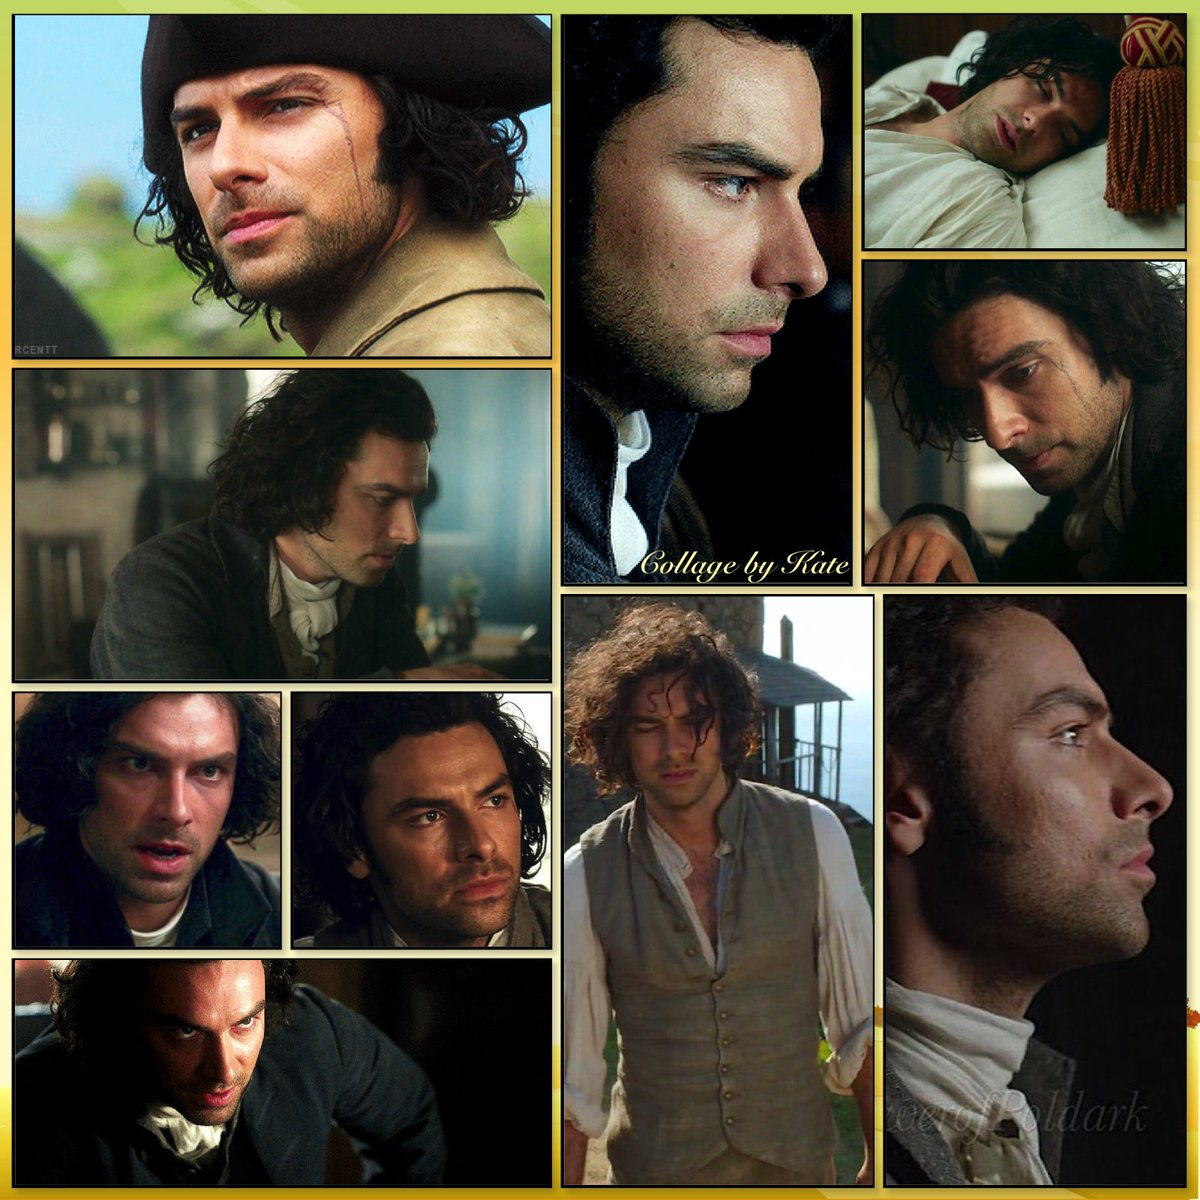 Happy #StubbleSaturday #AidanCrew #AidanTurner #Poldark  I wish you all a wonderful weekend. It feels like spring is already here! Enjoy!<br>http://pic.twitter.com/k496ckARsv